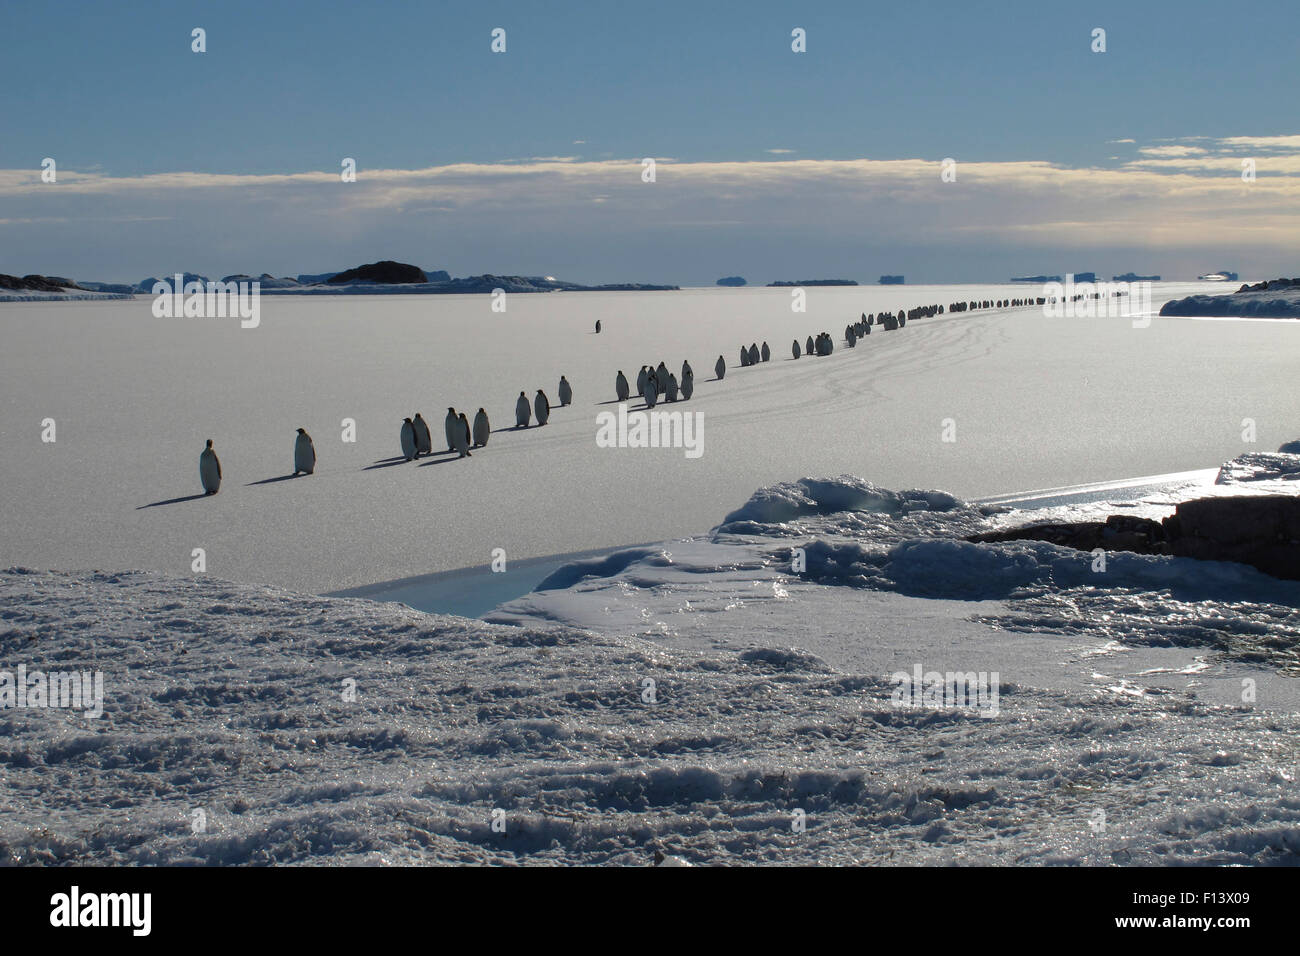 Emperor penguin (Aptenodytes forsteri) procession crossing newly formed sea ice on the way to their breeding grounds, - Stock Image